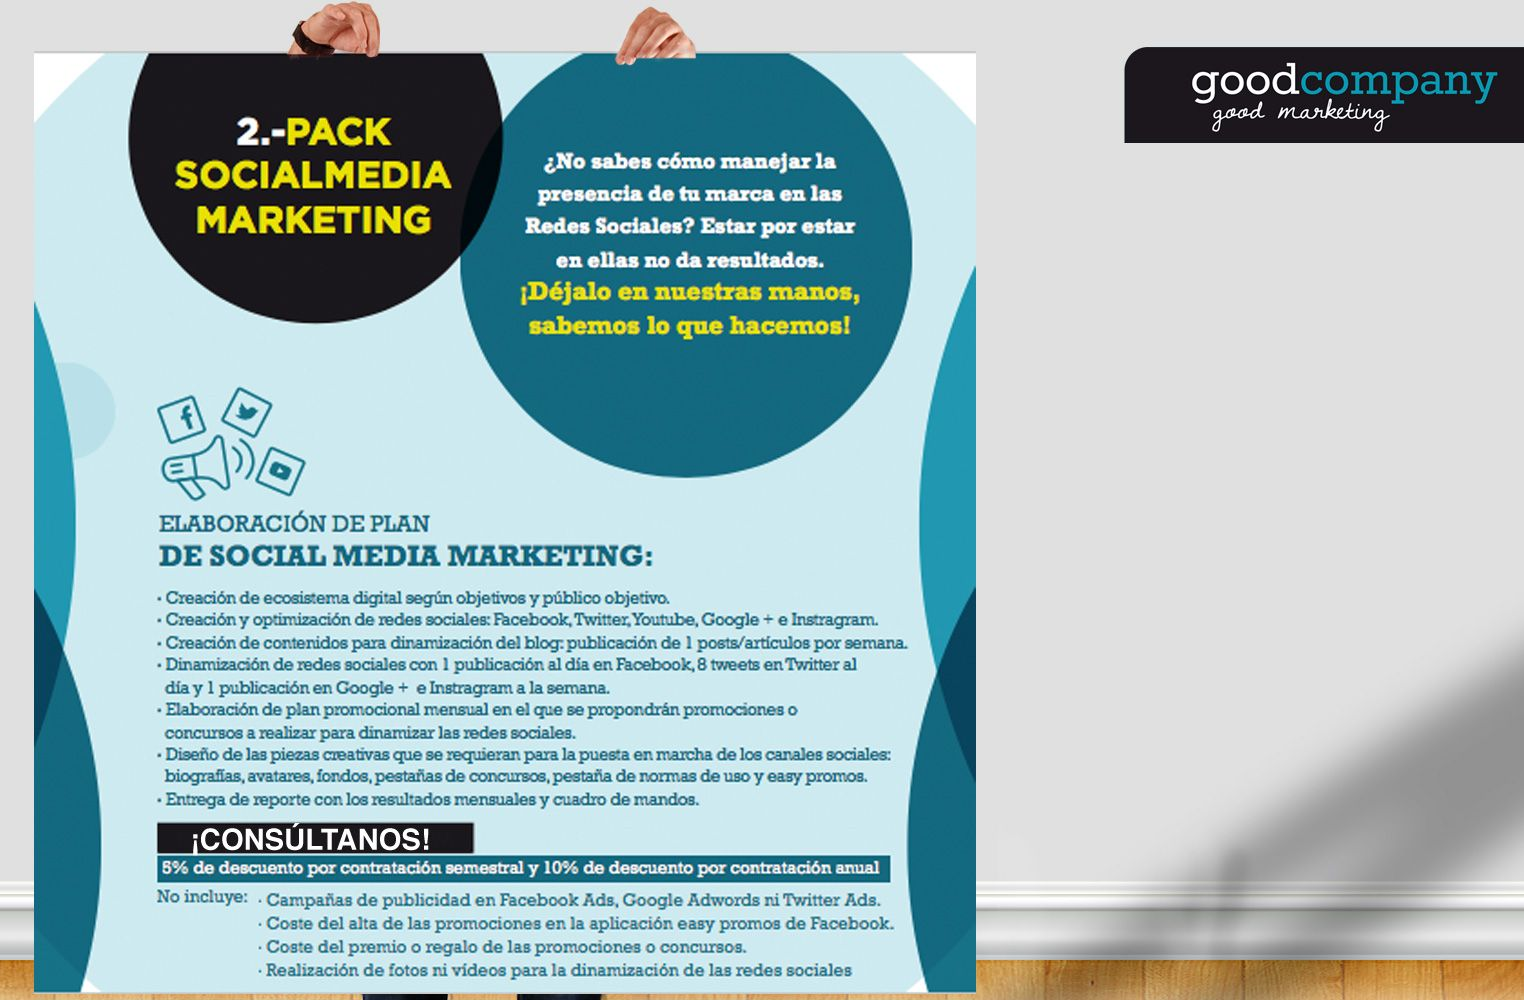 pack-promocional-gestion-de-redes-sociales-agencia-de-publicidad-y-marketing